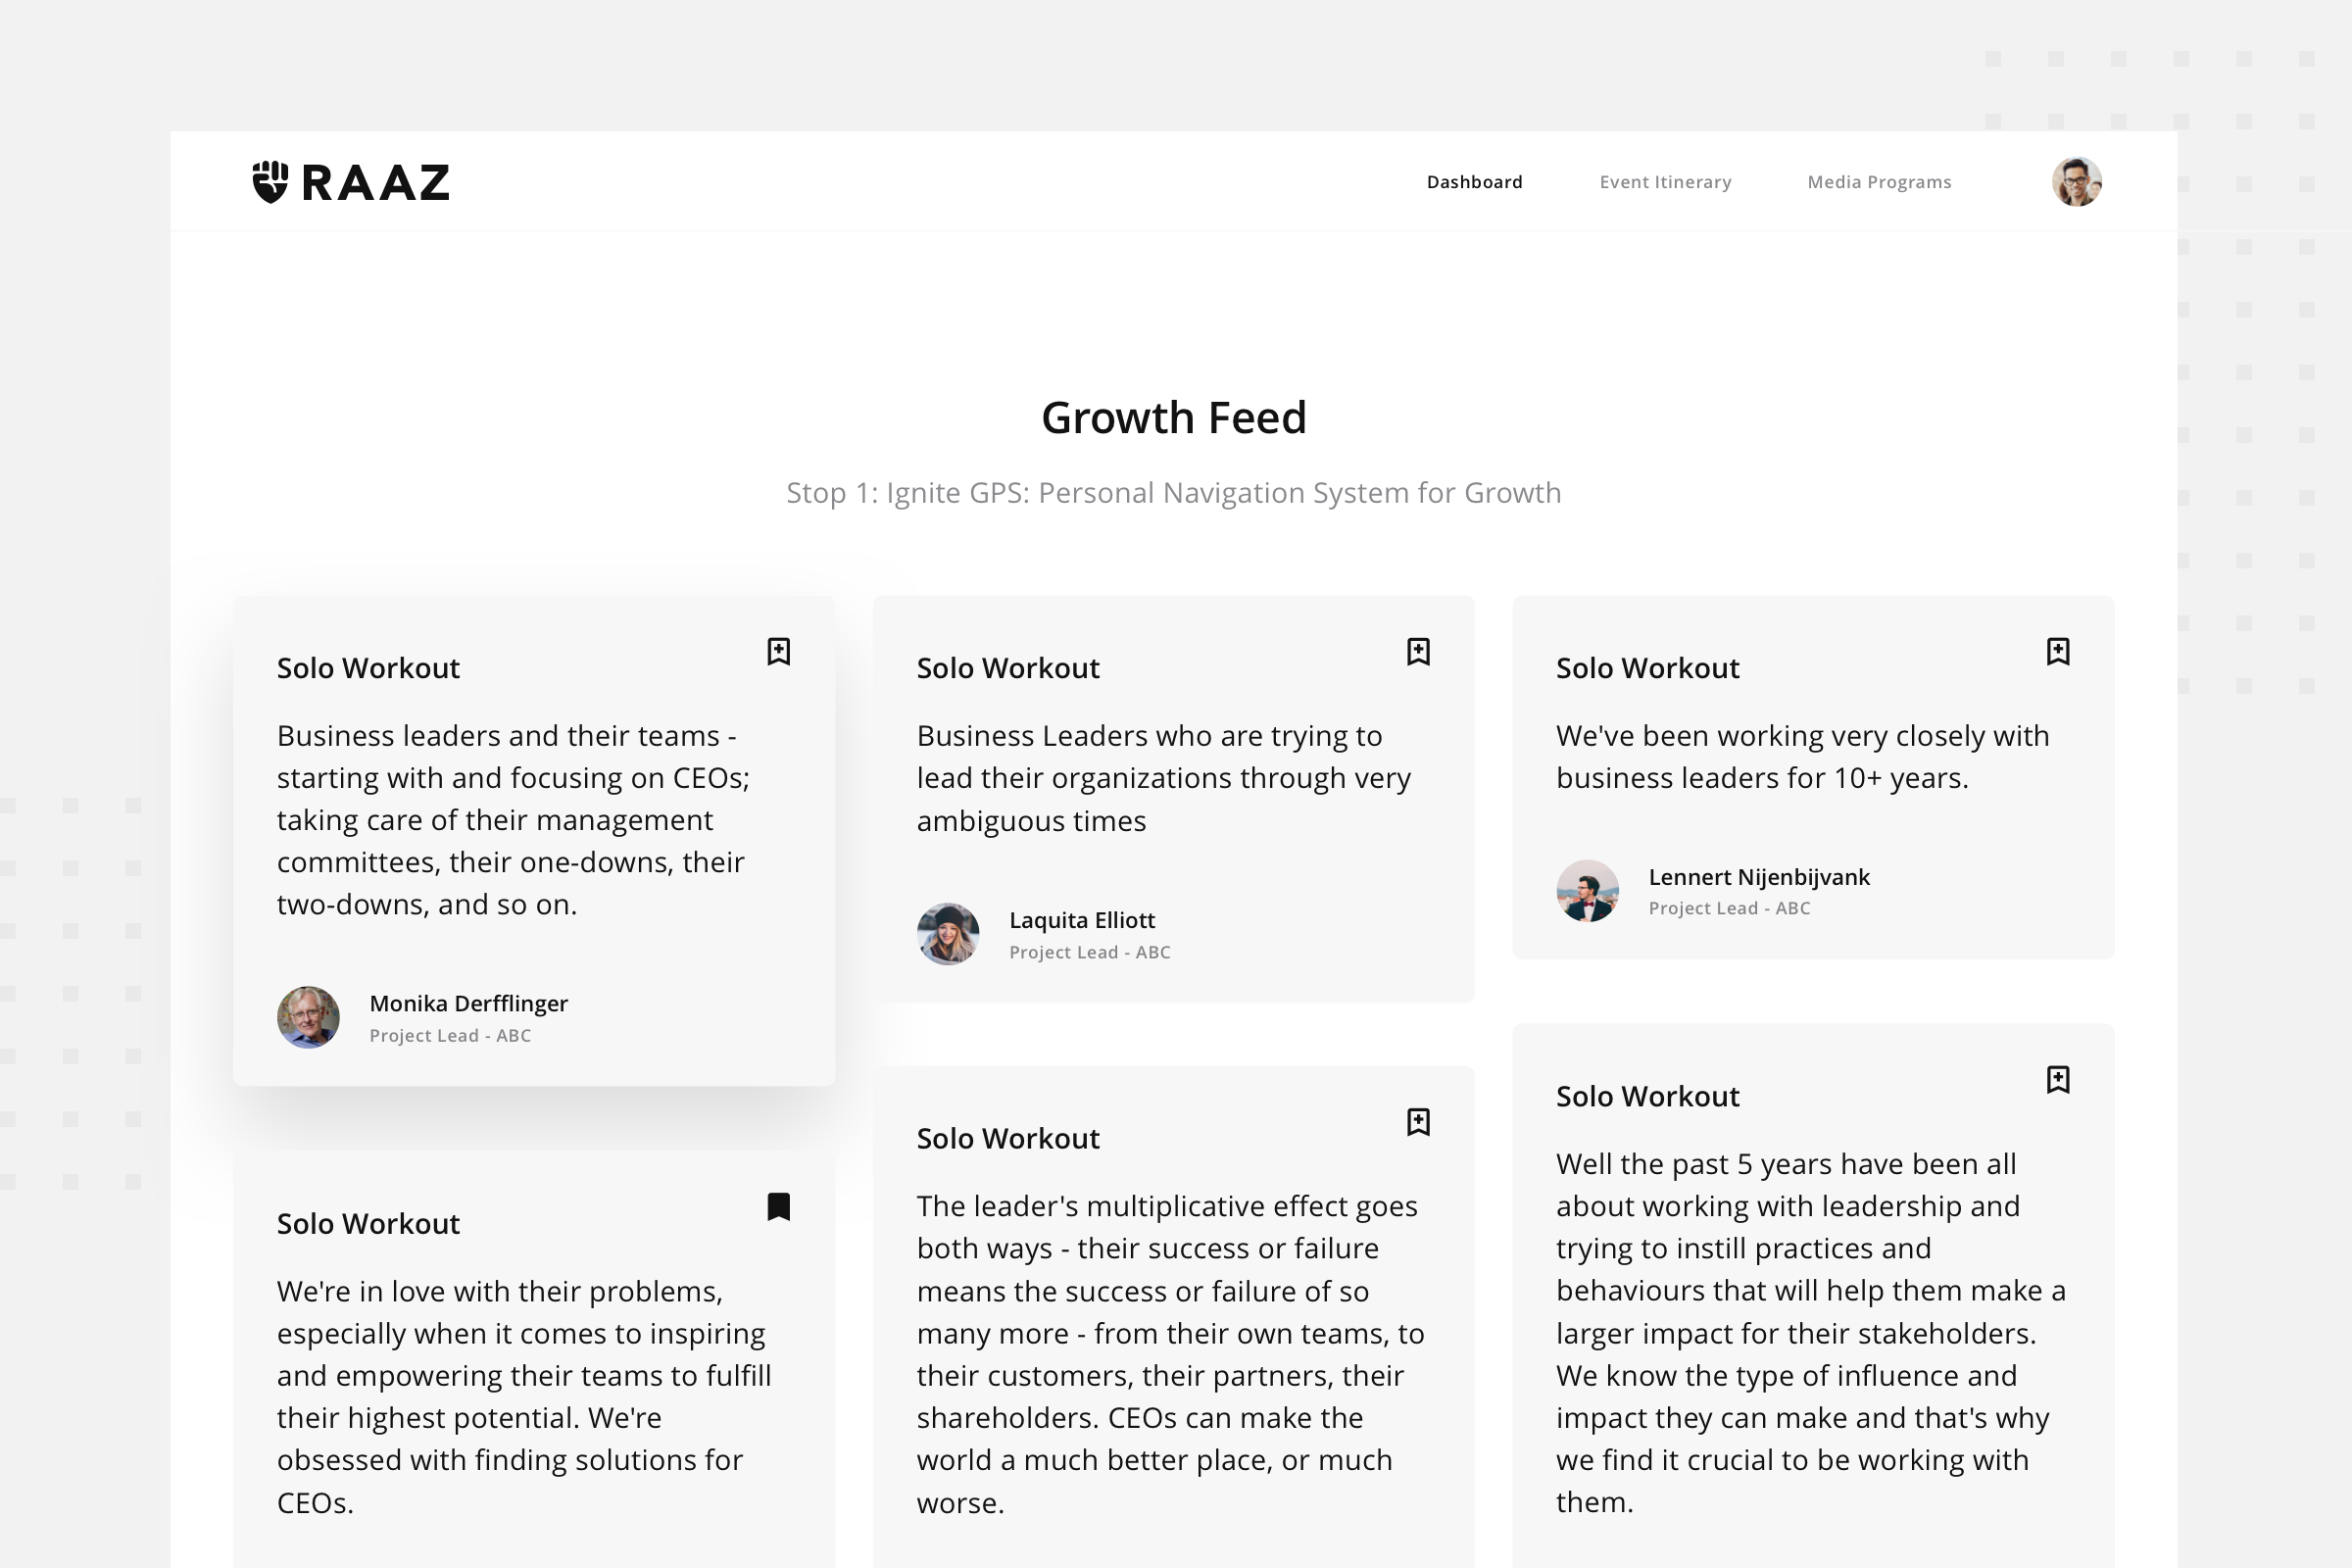 Growth Feed@2x